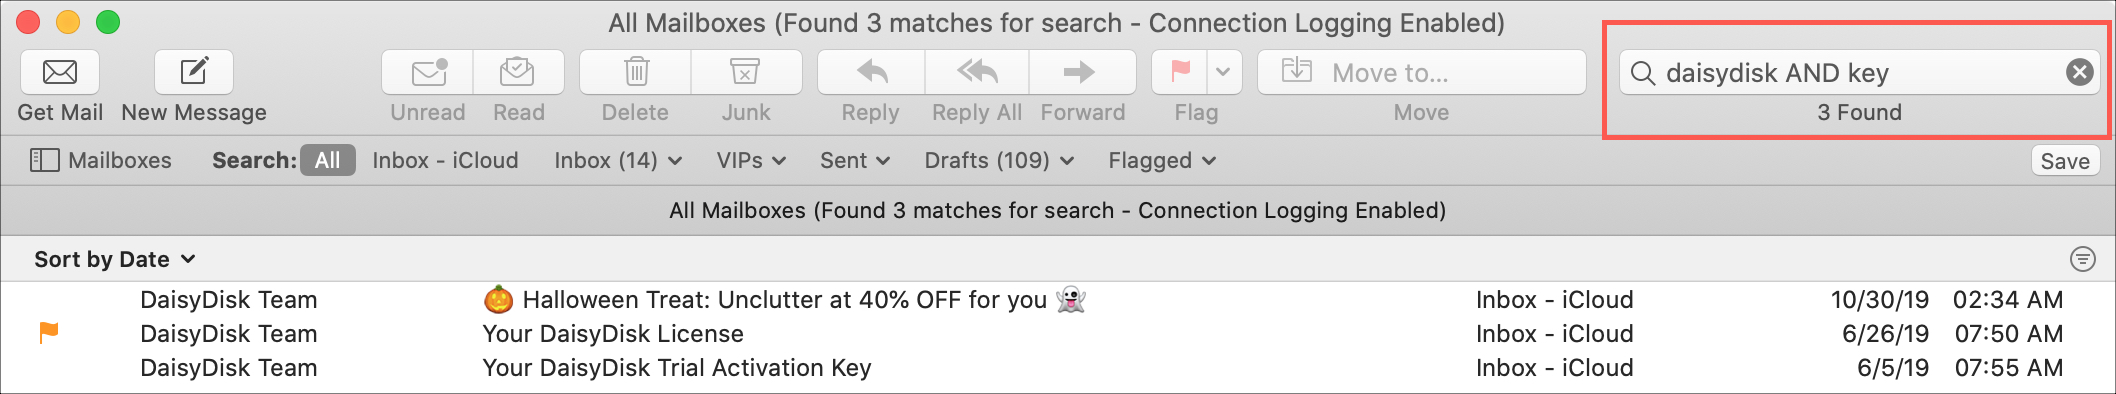 Mail Search Filters Boolean